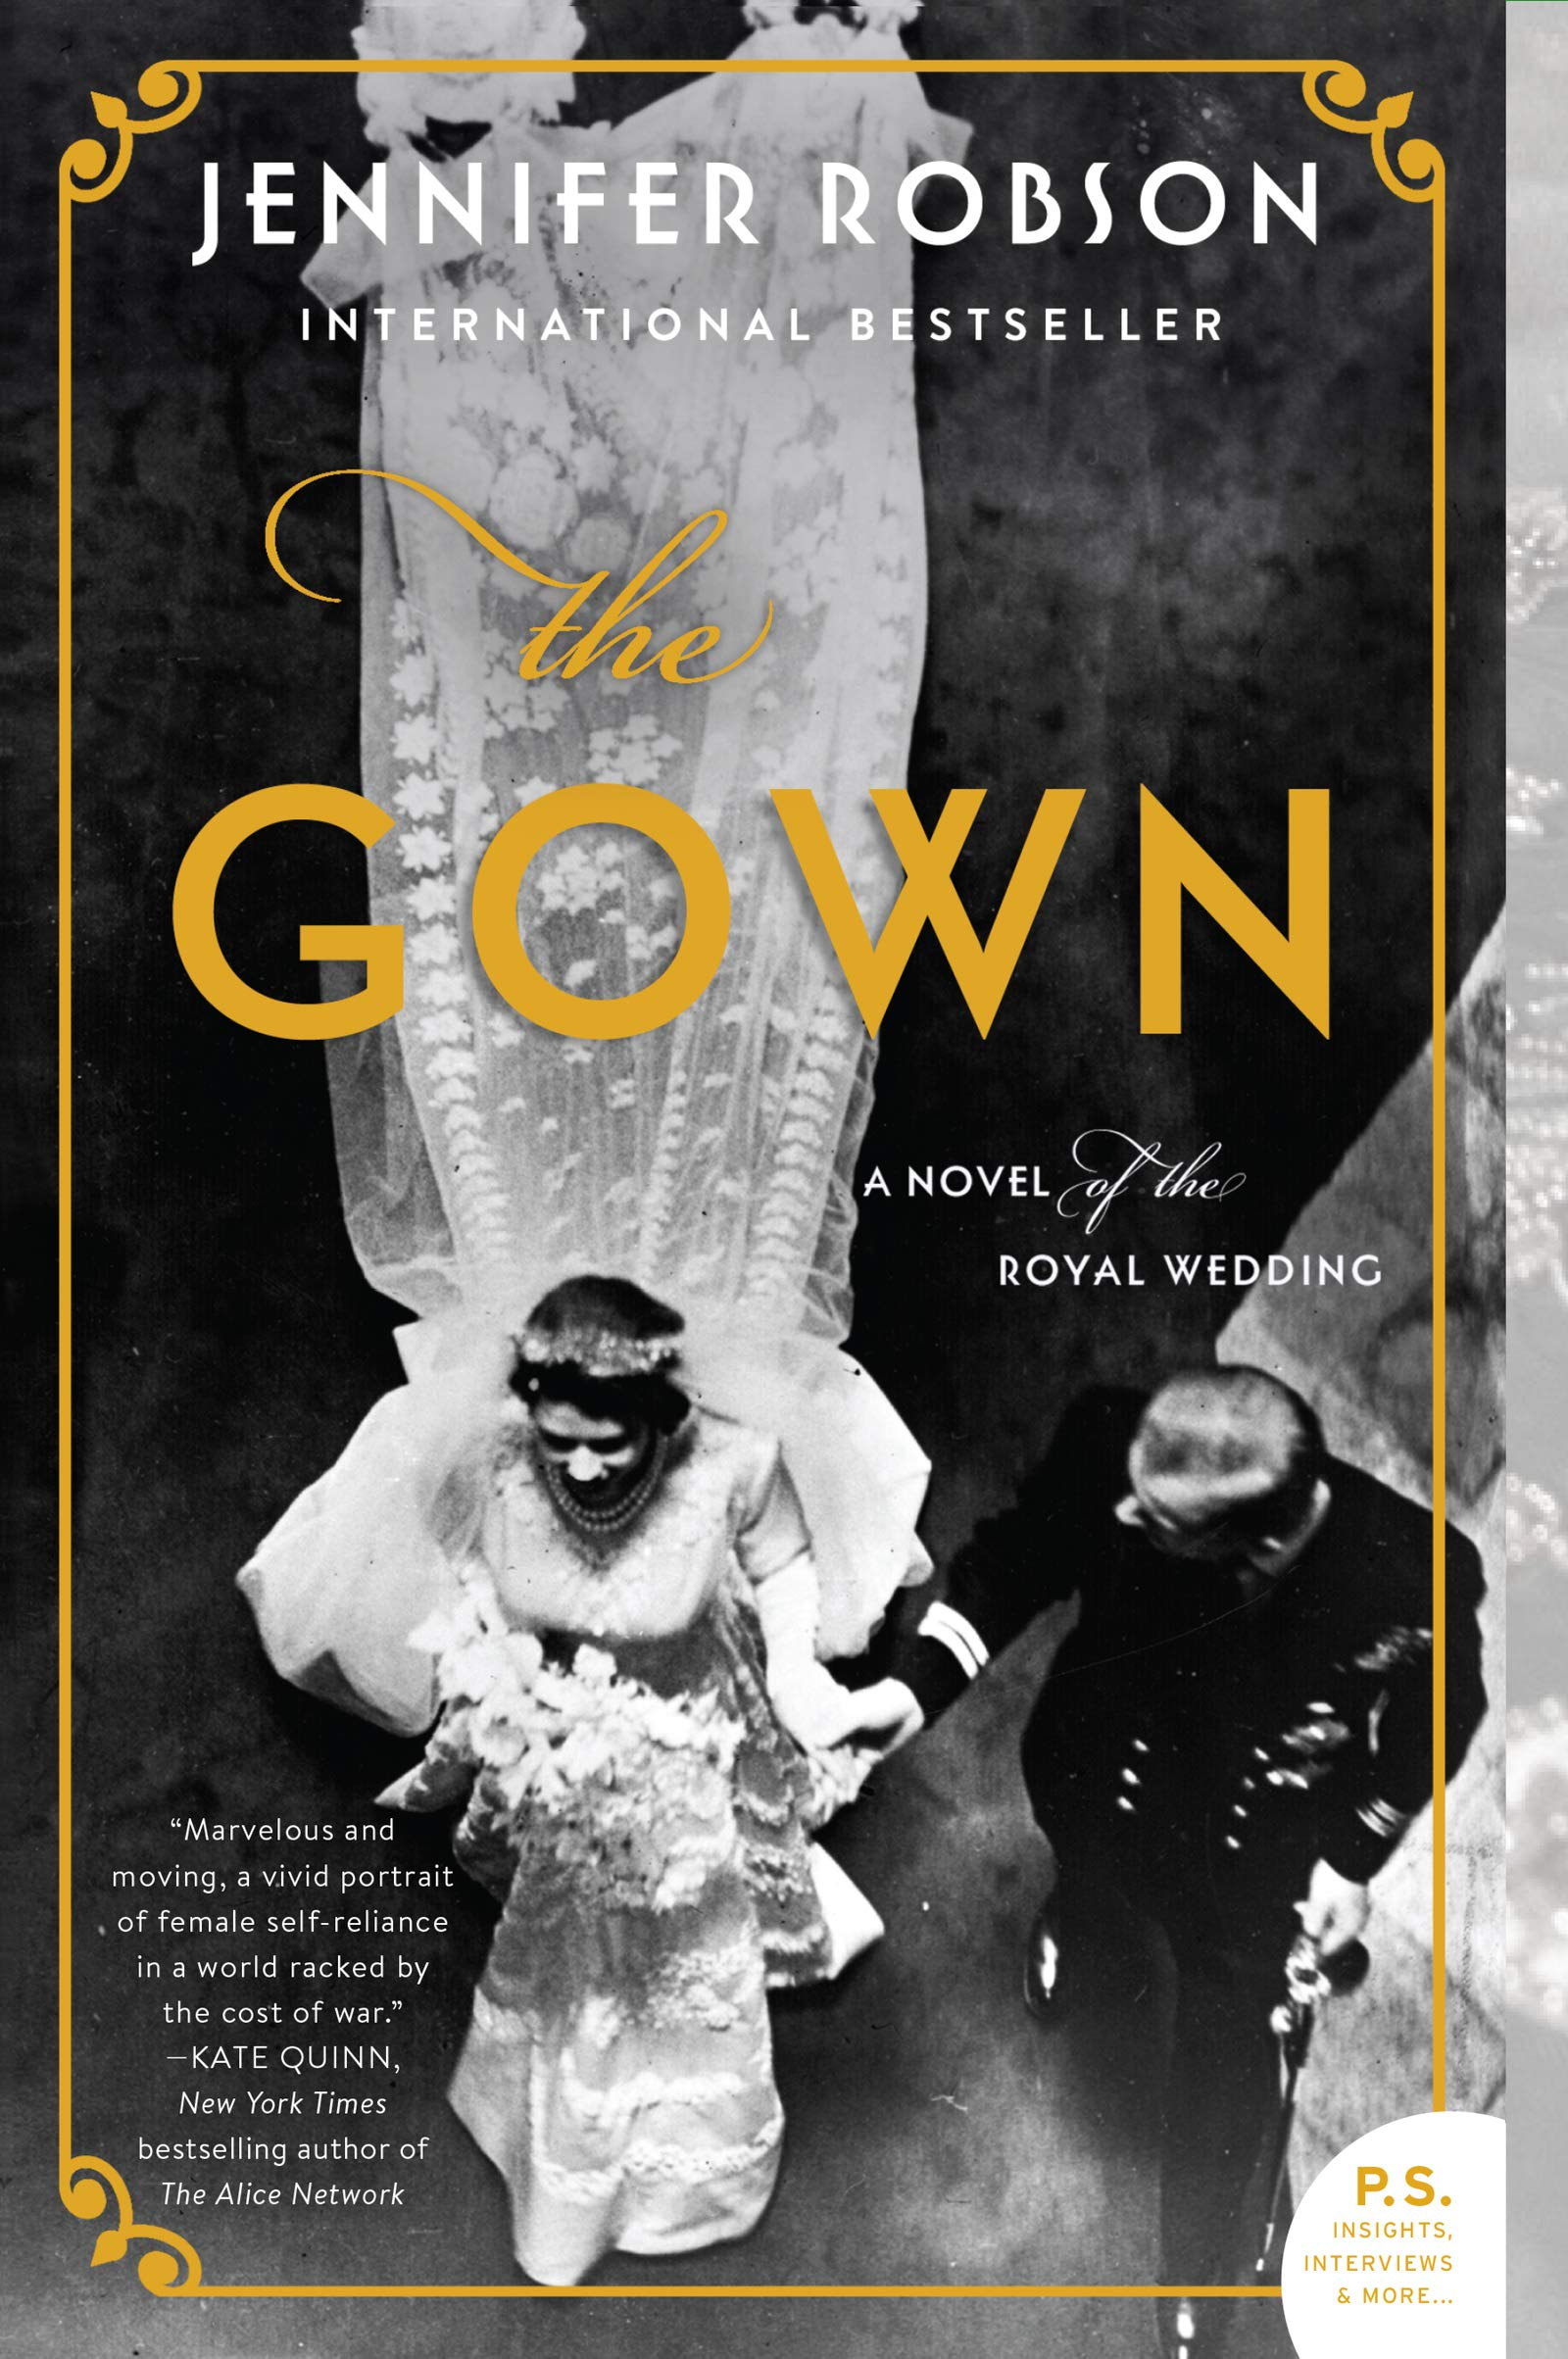 "Sunday, December 1  ""For fans of ""The Crown,"" looking for history served up as intimate drama, and those seeking another angle on royal lives, ""The Gown"" seems likely to dazzle and delight."" – The Washington Post  With  The Gown , Jennifer Robson takes us inside the workrooms where one of the most famous wedding gowns in history was created. Balancing behind-the-scenes details with a sweeping portrait of a society left reeling by the calamitous costs of victory, she introduces readers to three unforgettable heroines, their points of view alternating and intersecting throughout its pages, whose lives are woven together by the pain of survival, the bonds of friendship, and the redemptive power of love."